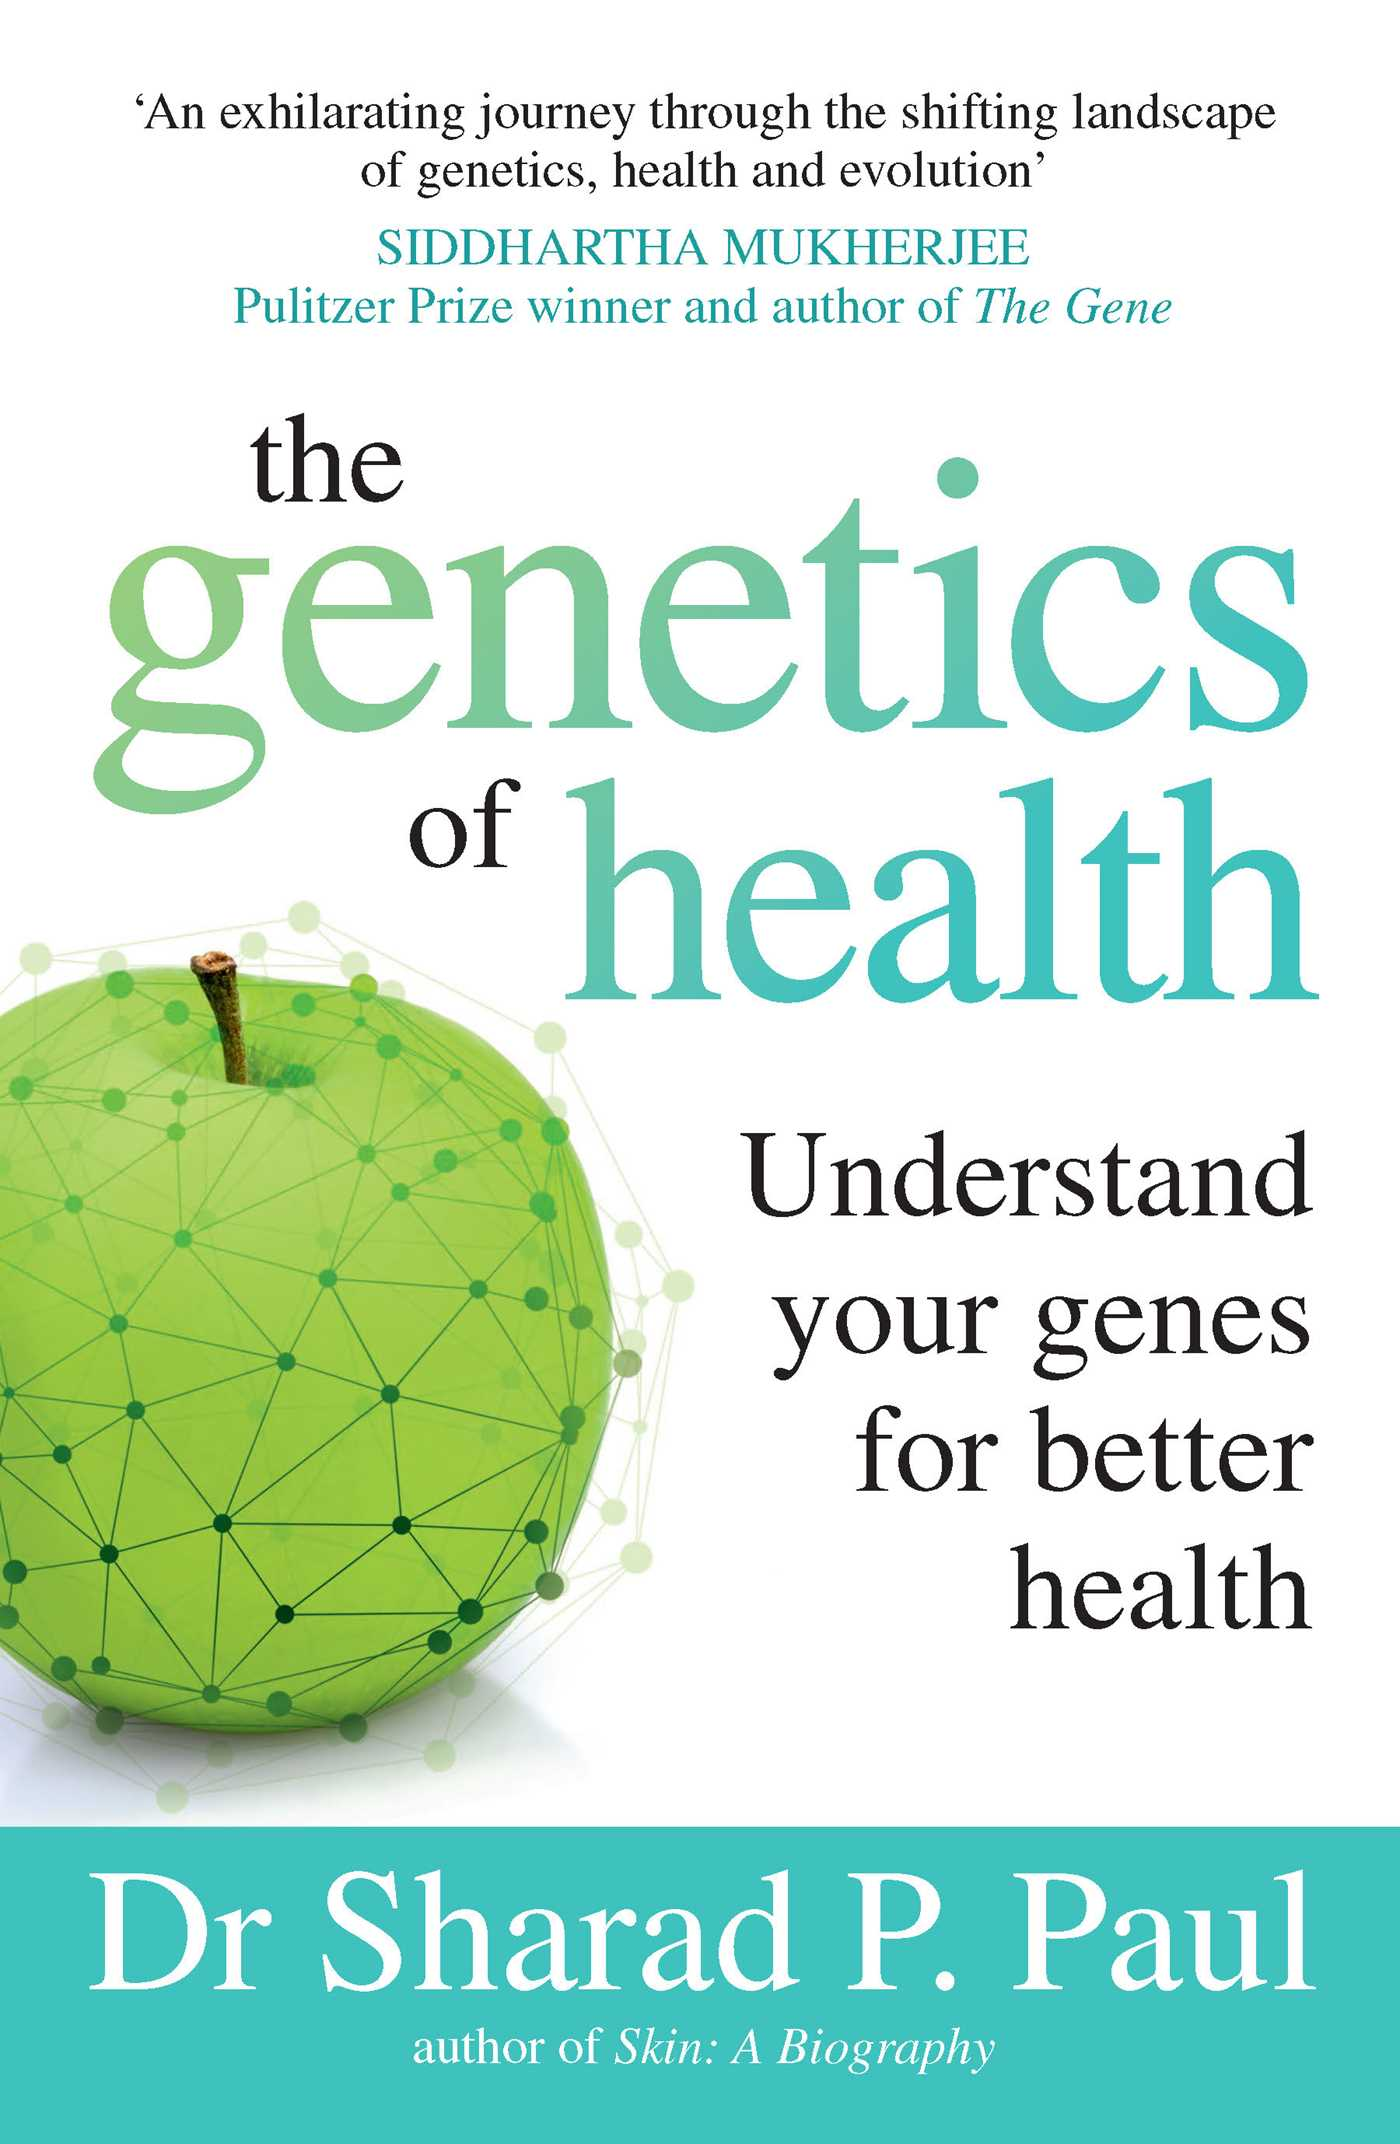 The genetics of health understand your genes for better health 9781925596106 hr